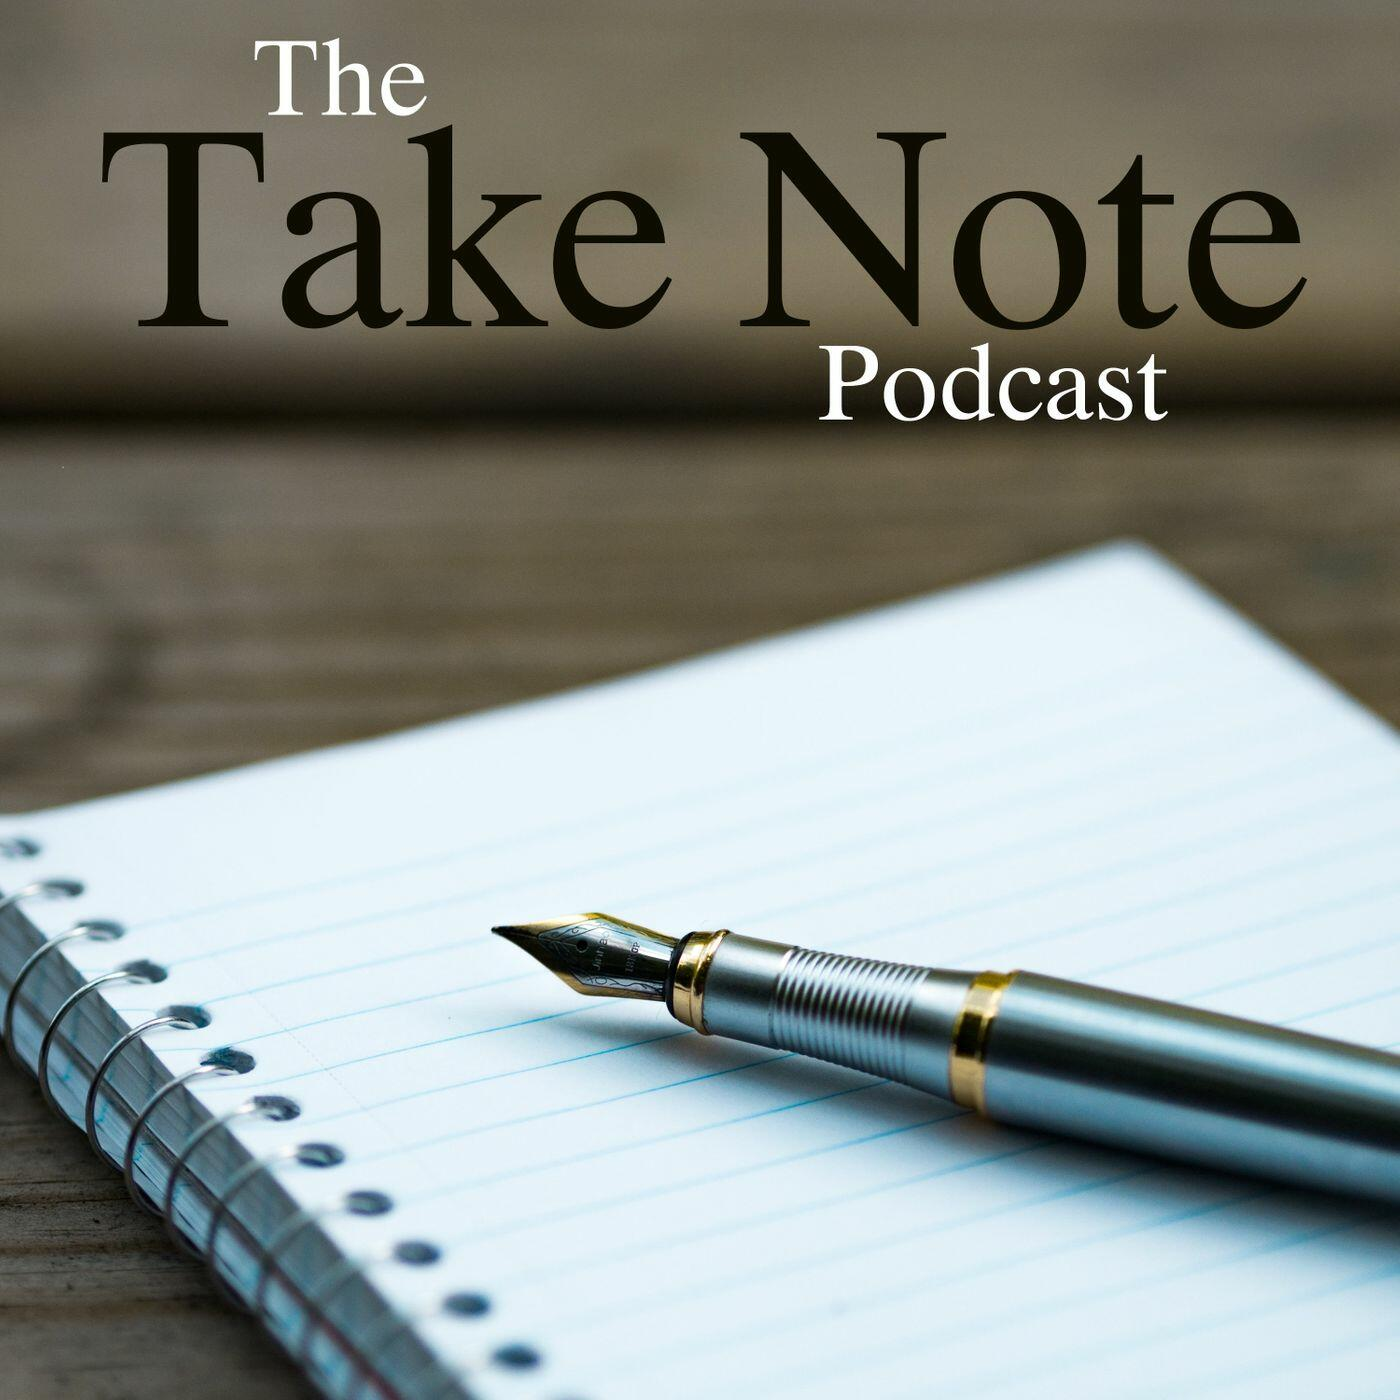 Take Note Podcast